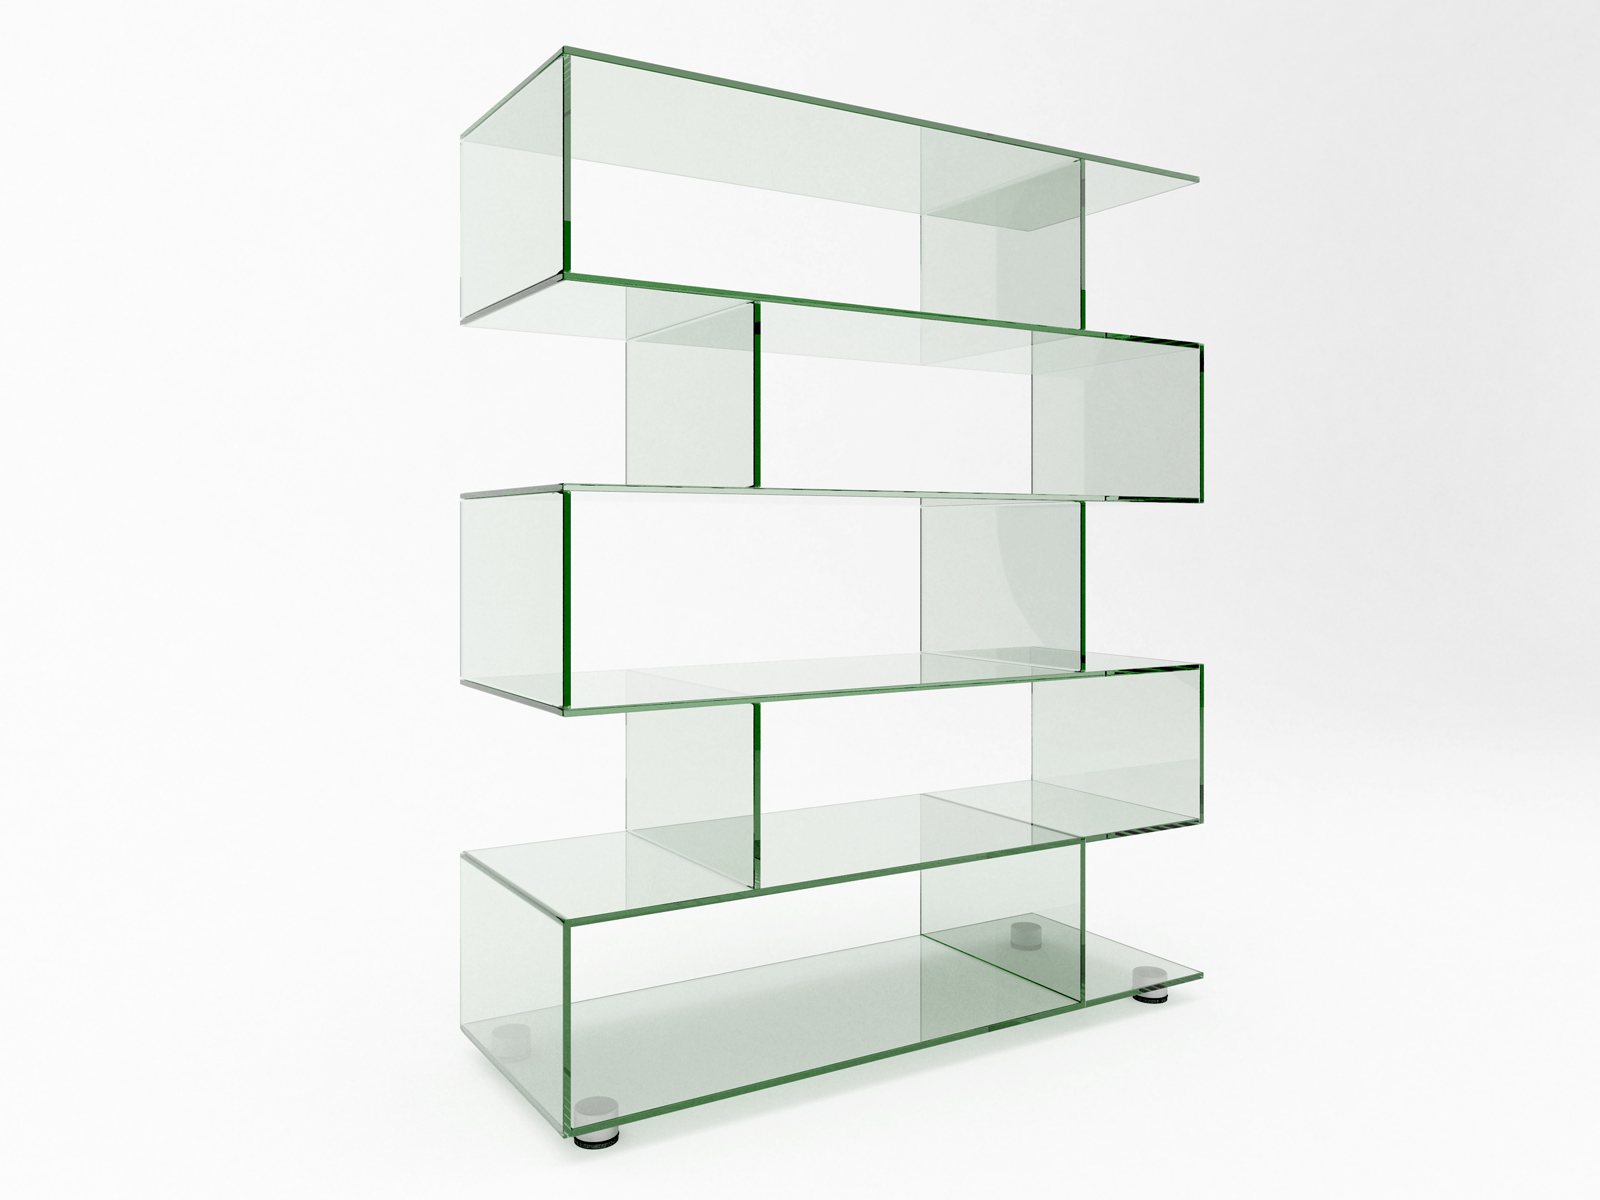 Lissi display Bespoke glass furniture